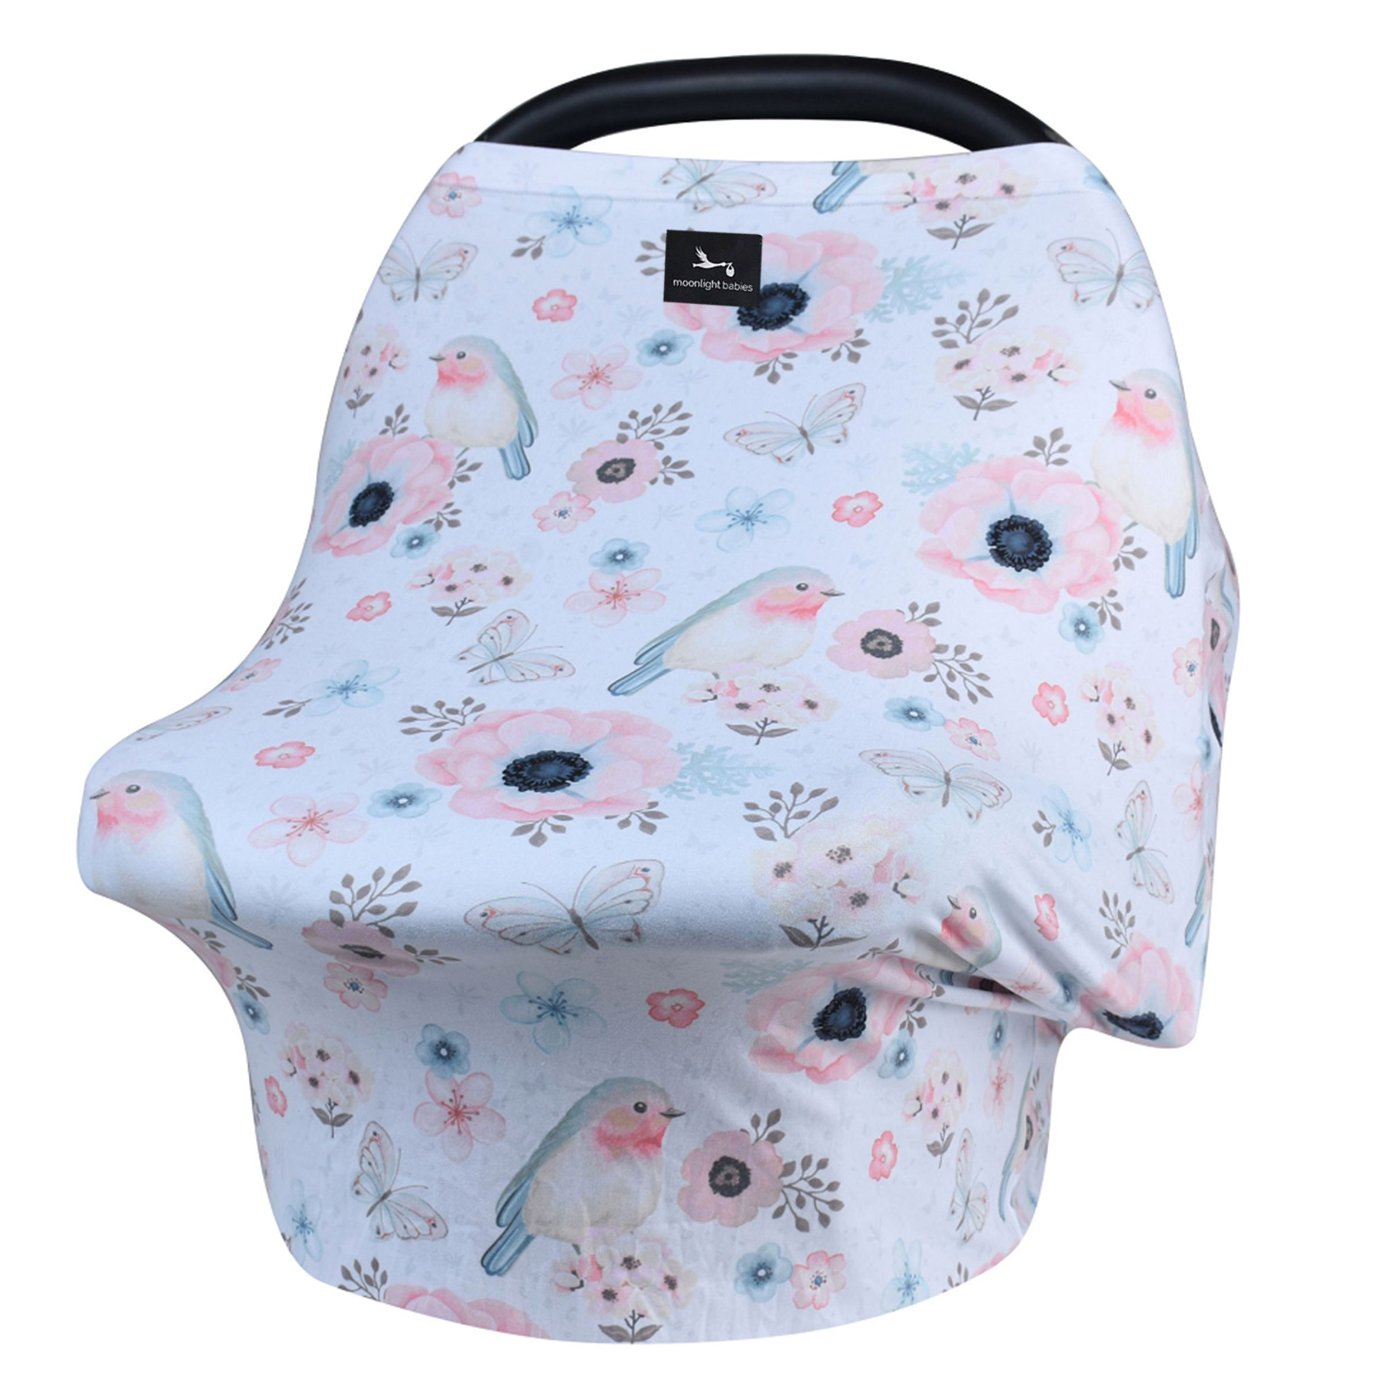 car-seat-cover-bird-flower-main